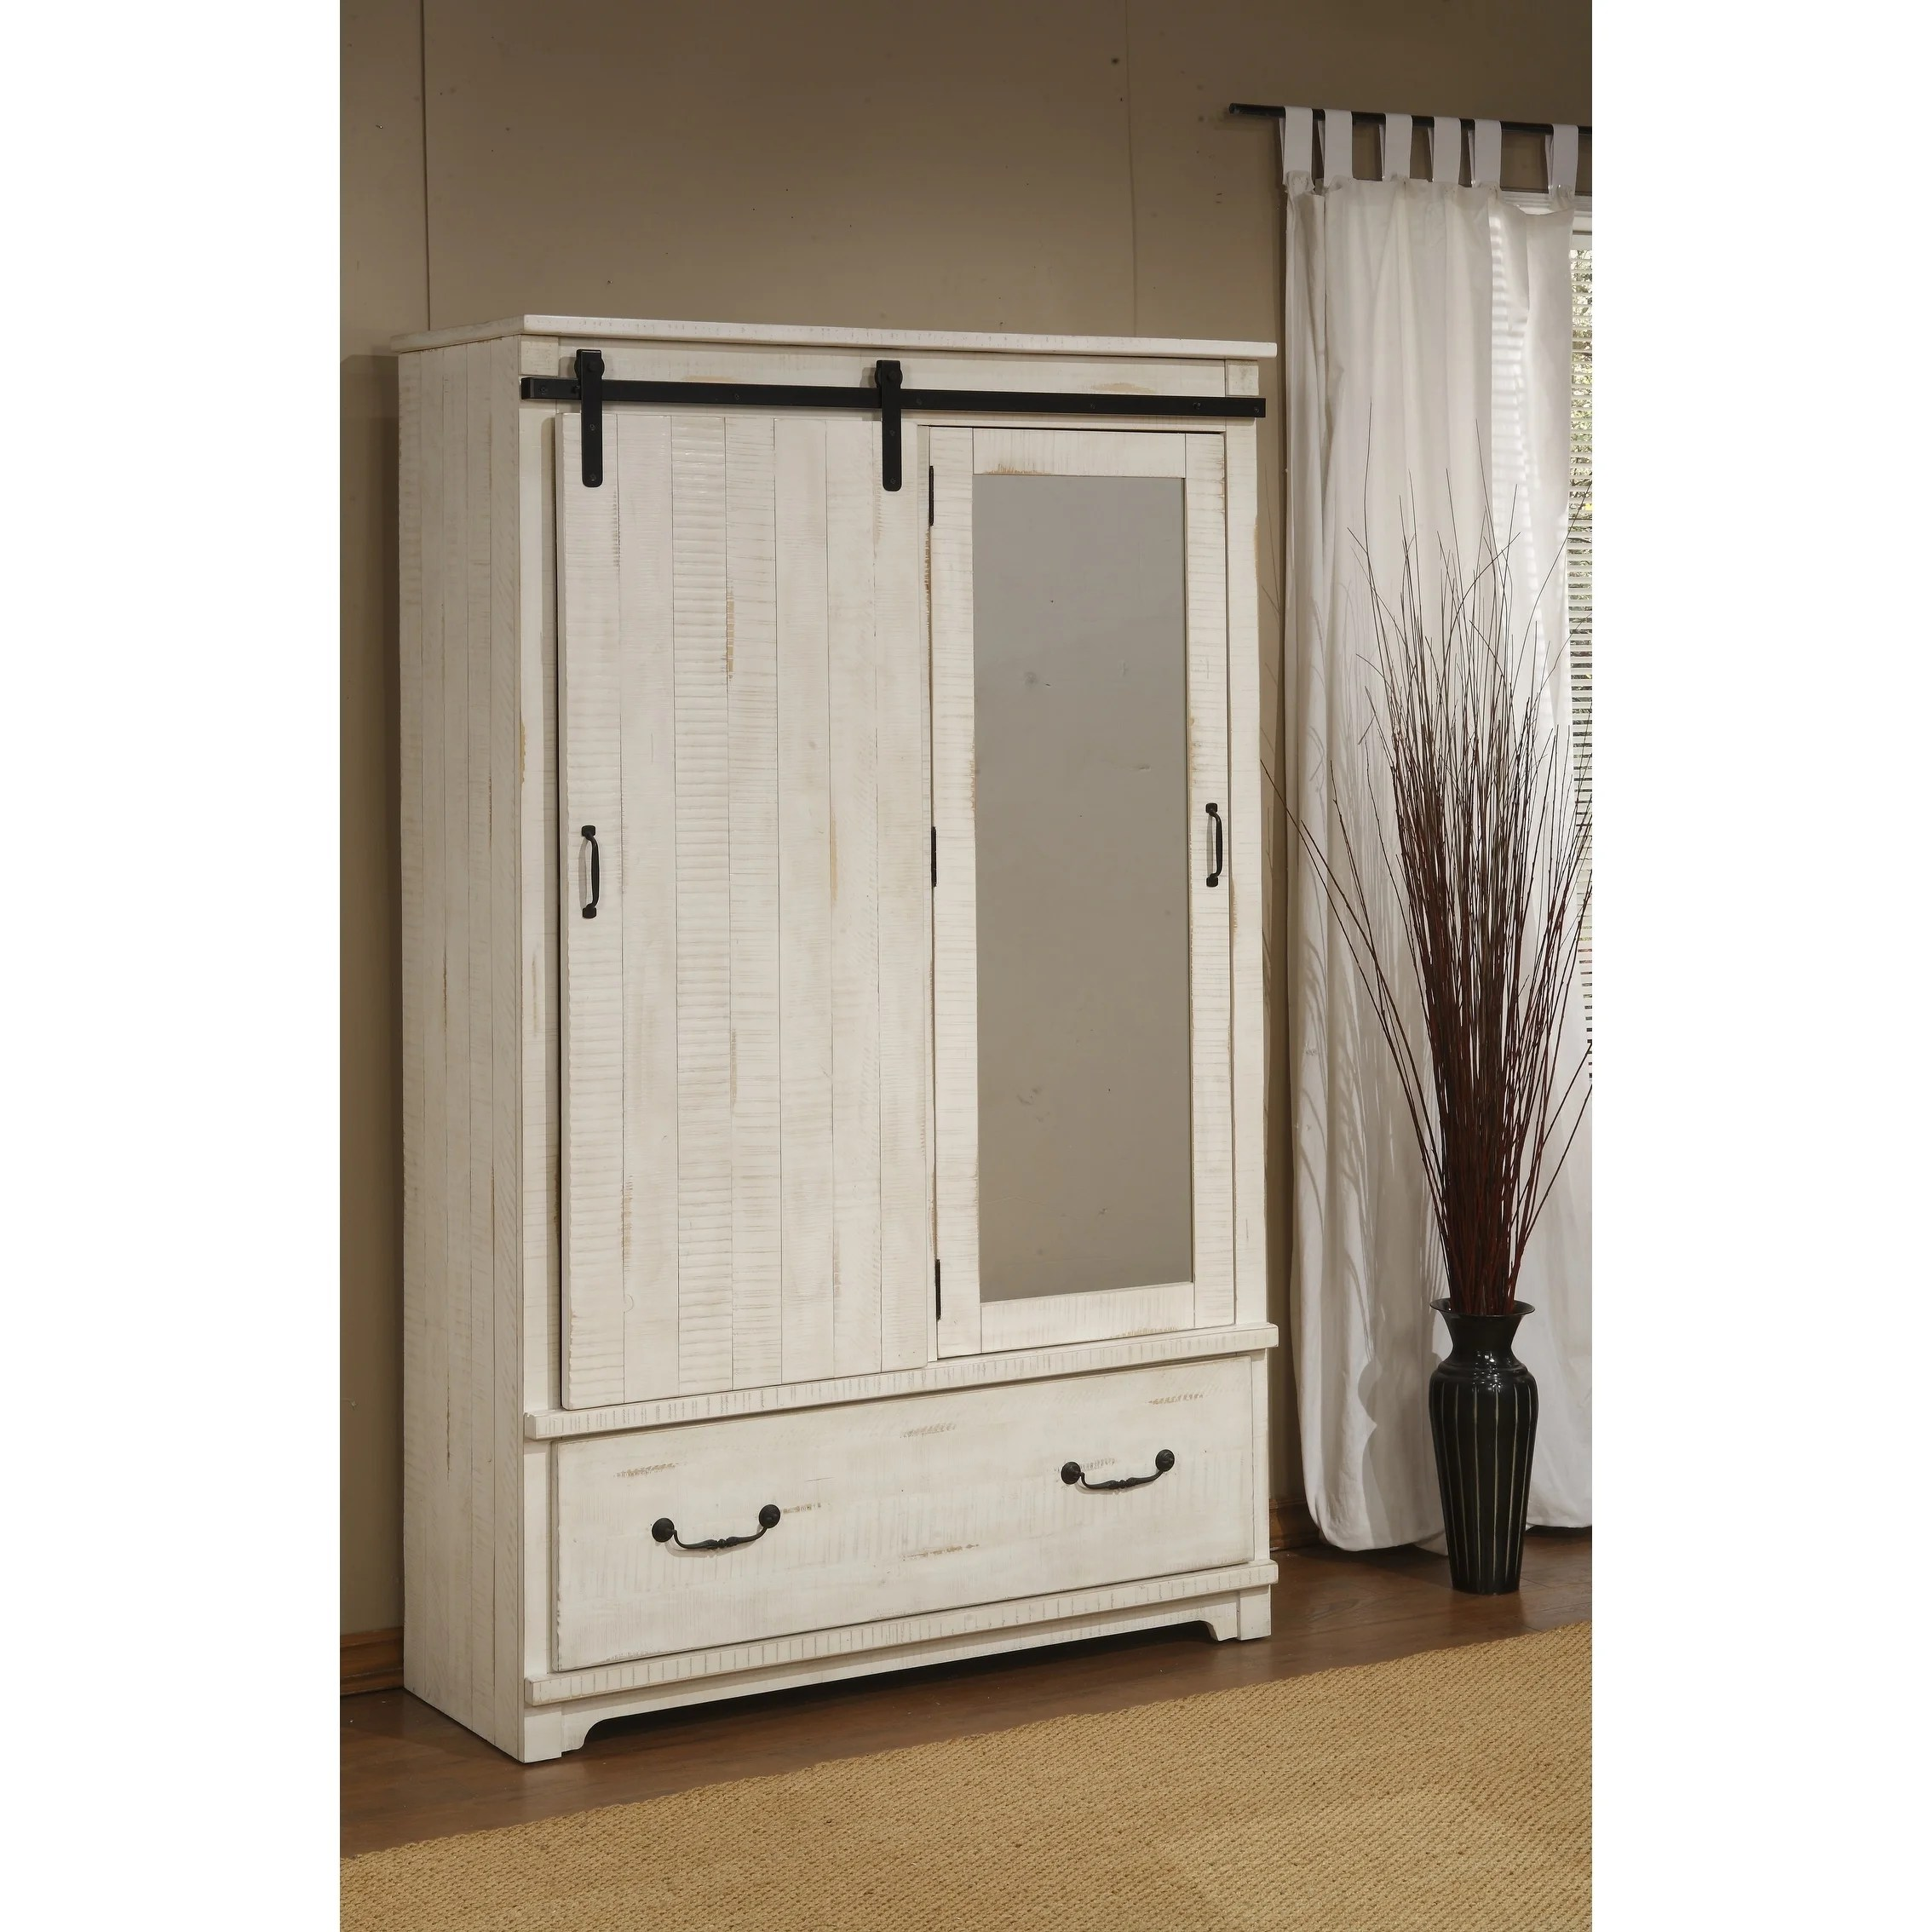 Armoire Dressing 150 Cm Buy Armoires Wardrobe Closets Sale Online At Overstock Our